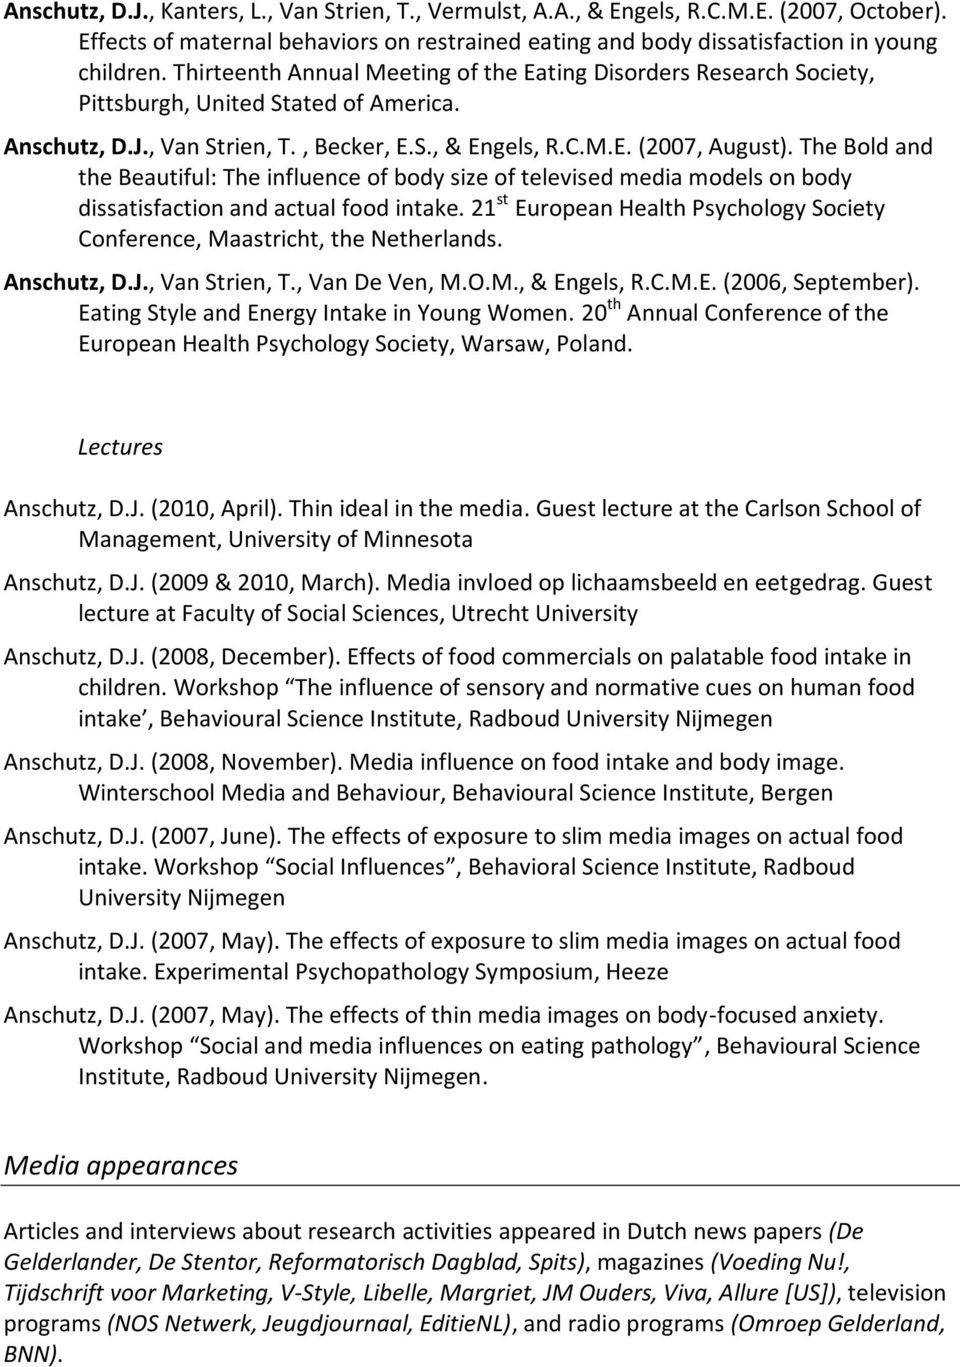 The Bold and the Beautiful: The influence of body size of televised media models on body dissatisfaction and actual food intake.